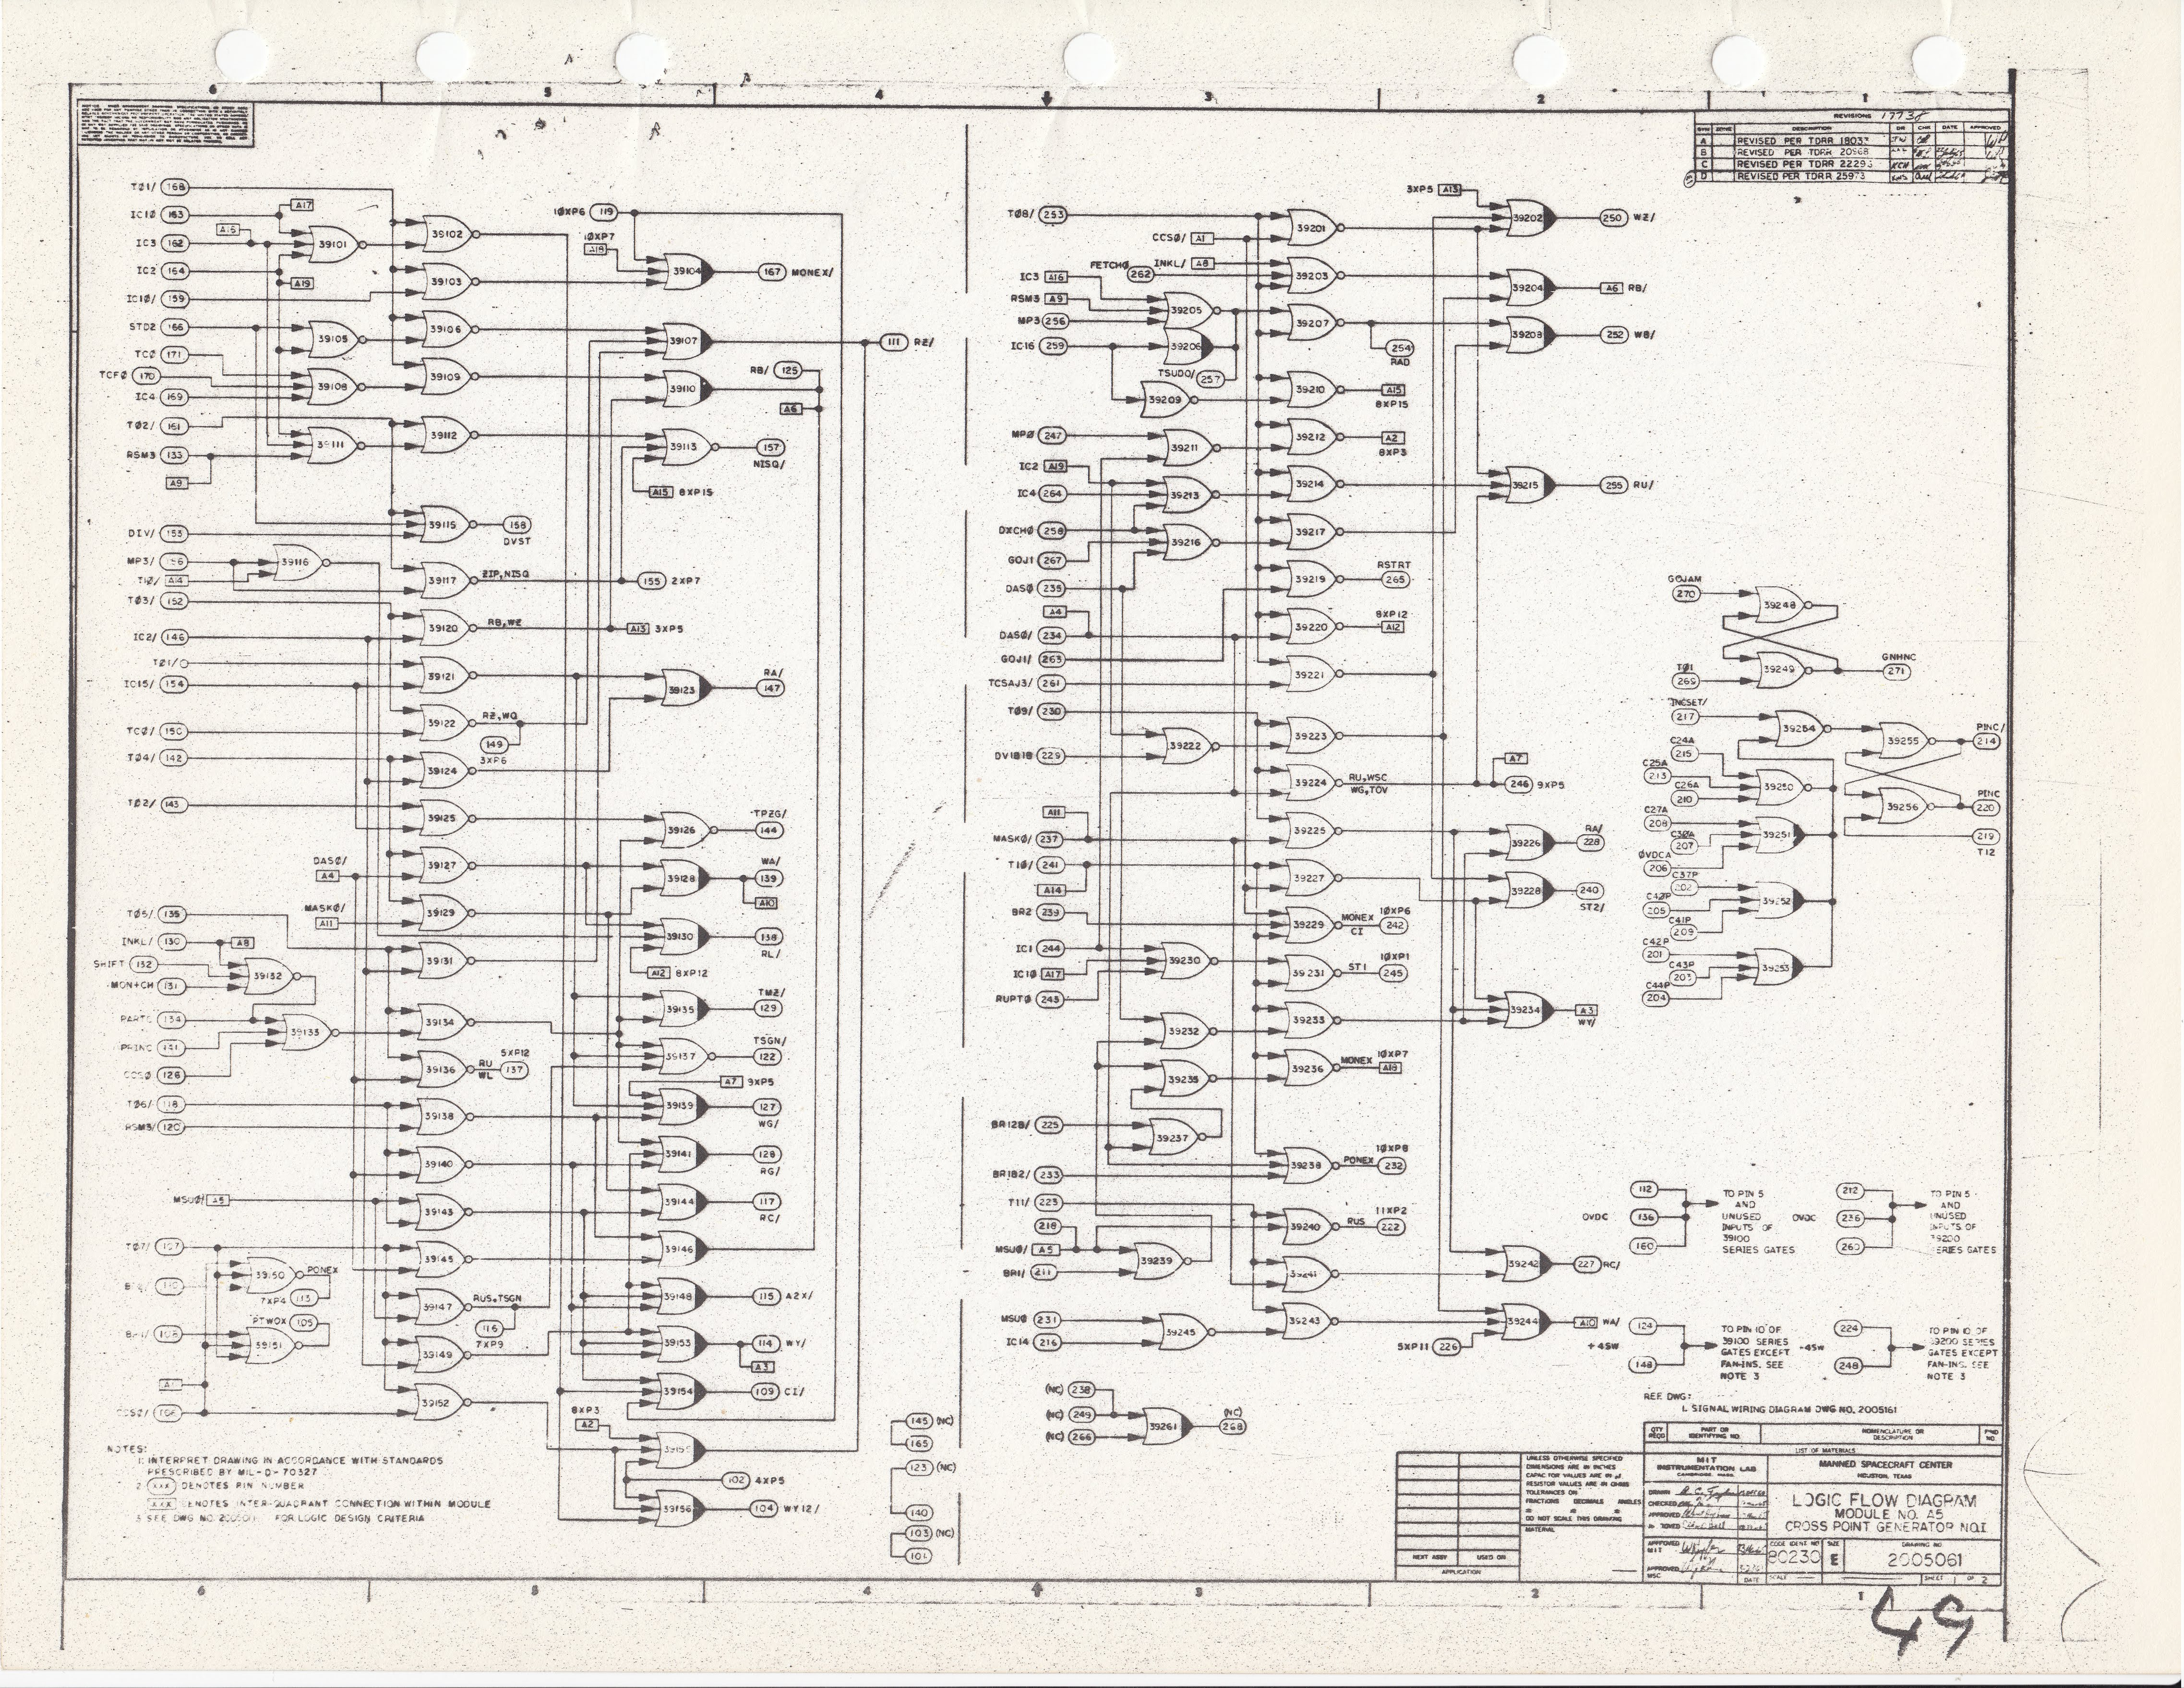 Virtual Agc Electrical Mechanical Page Of Fortune Circuit Diagram Electronic Diagrams Schematics And If We Look At That Drawing Will Indeed Find Connector Pin 111 Is Being Driven By Nor Gates 39107 39155